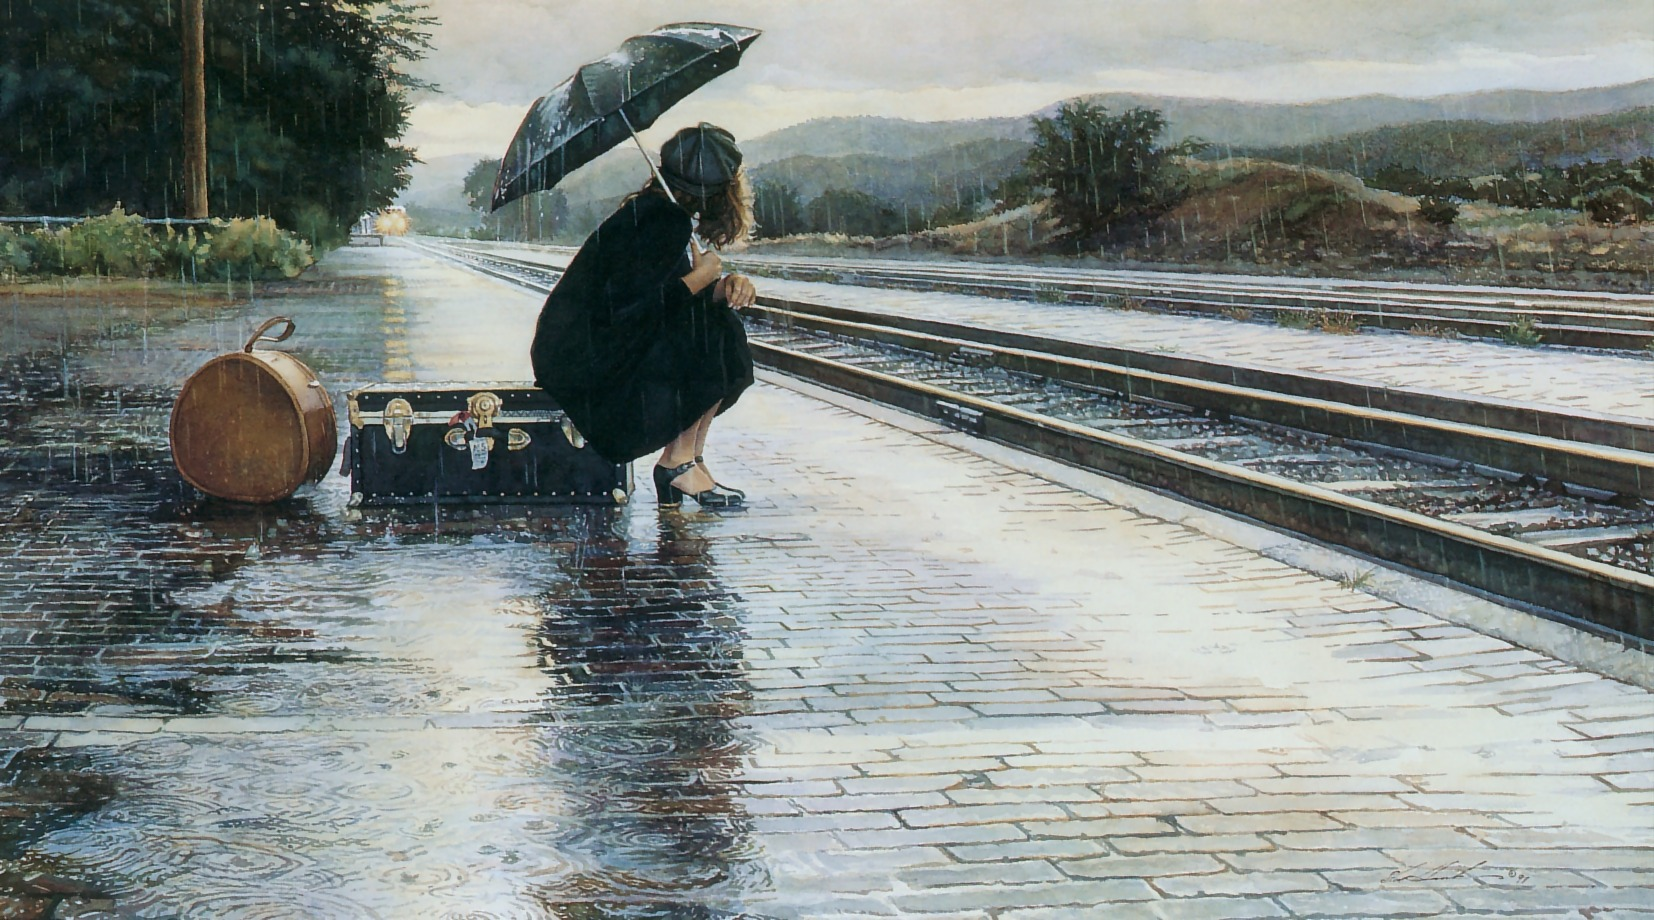 IMAGE(http://www.malor.com/wallpaper/S4-SteveHanks047-LeavingInTheRain.jpg)